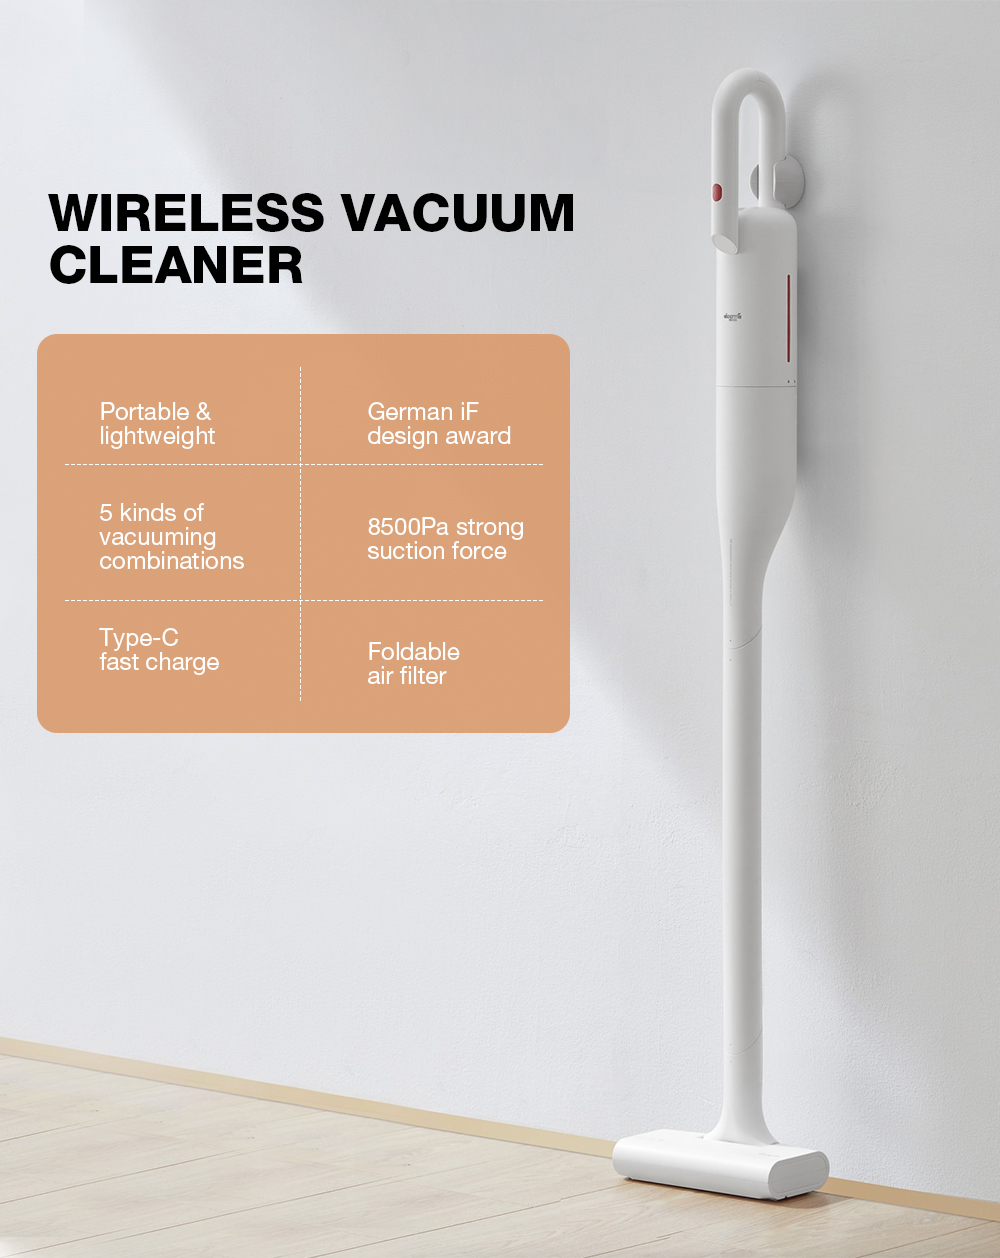 Deerma VC01 Wireless Vacuum Cleaner 43800rpm 8500Pa 30min Long Endurance 5 Vacuuming Combinations